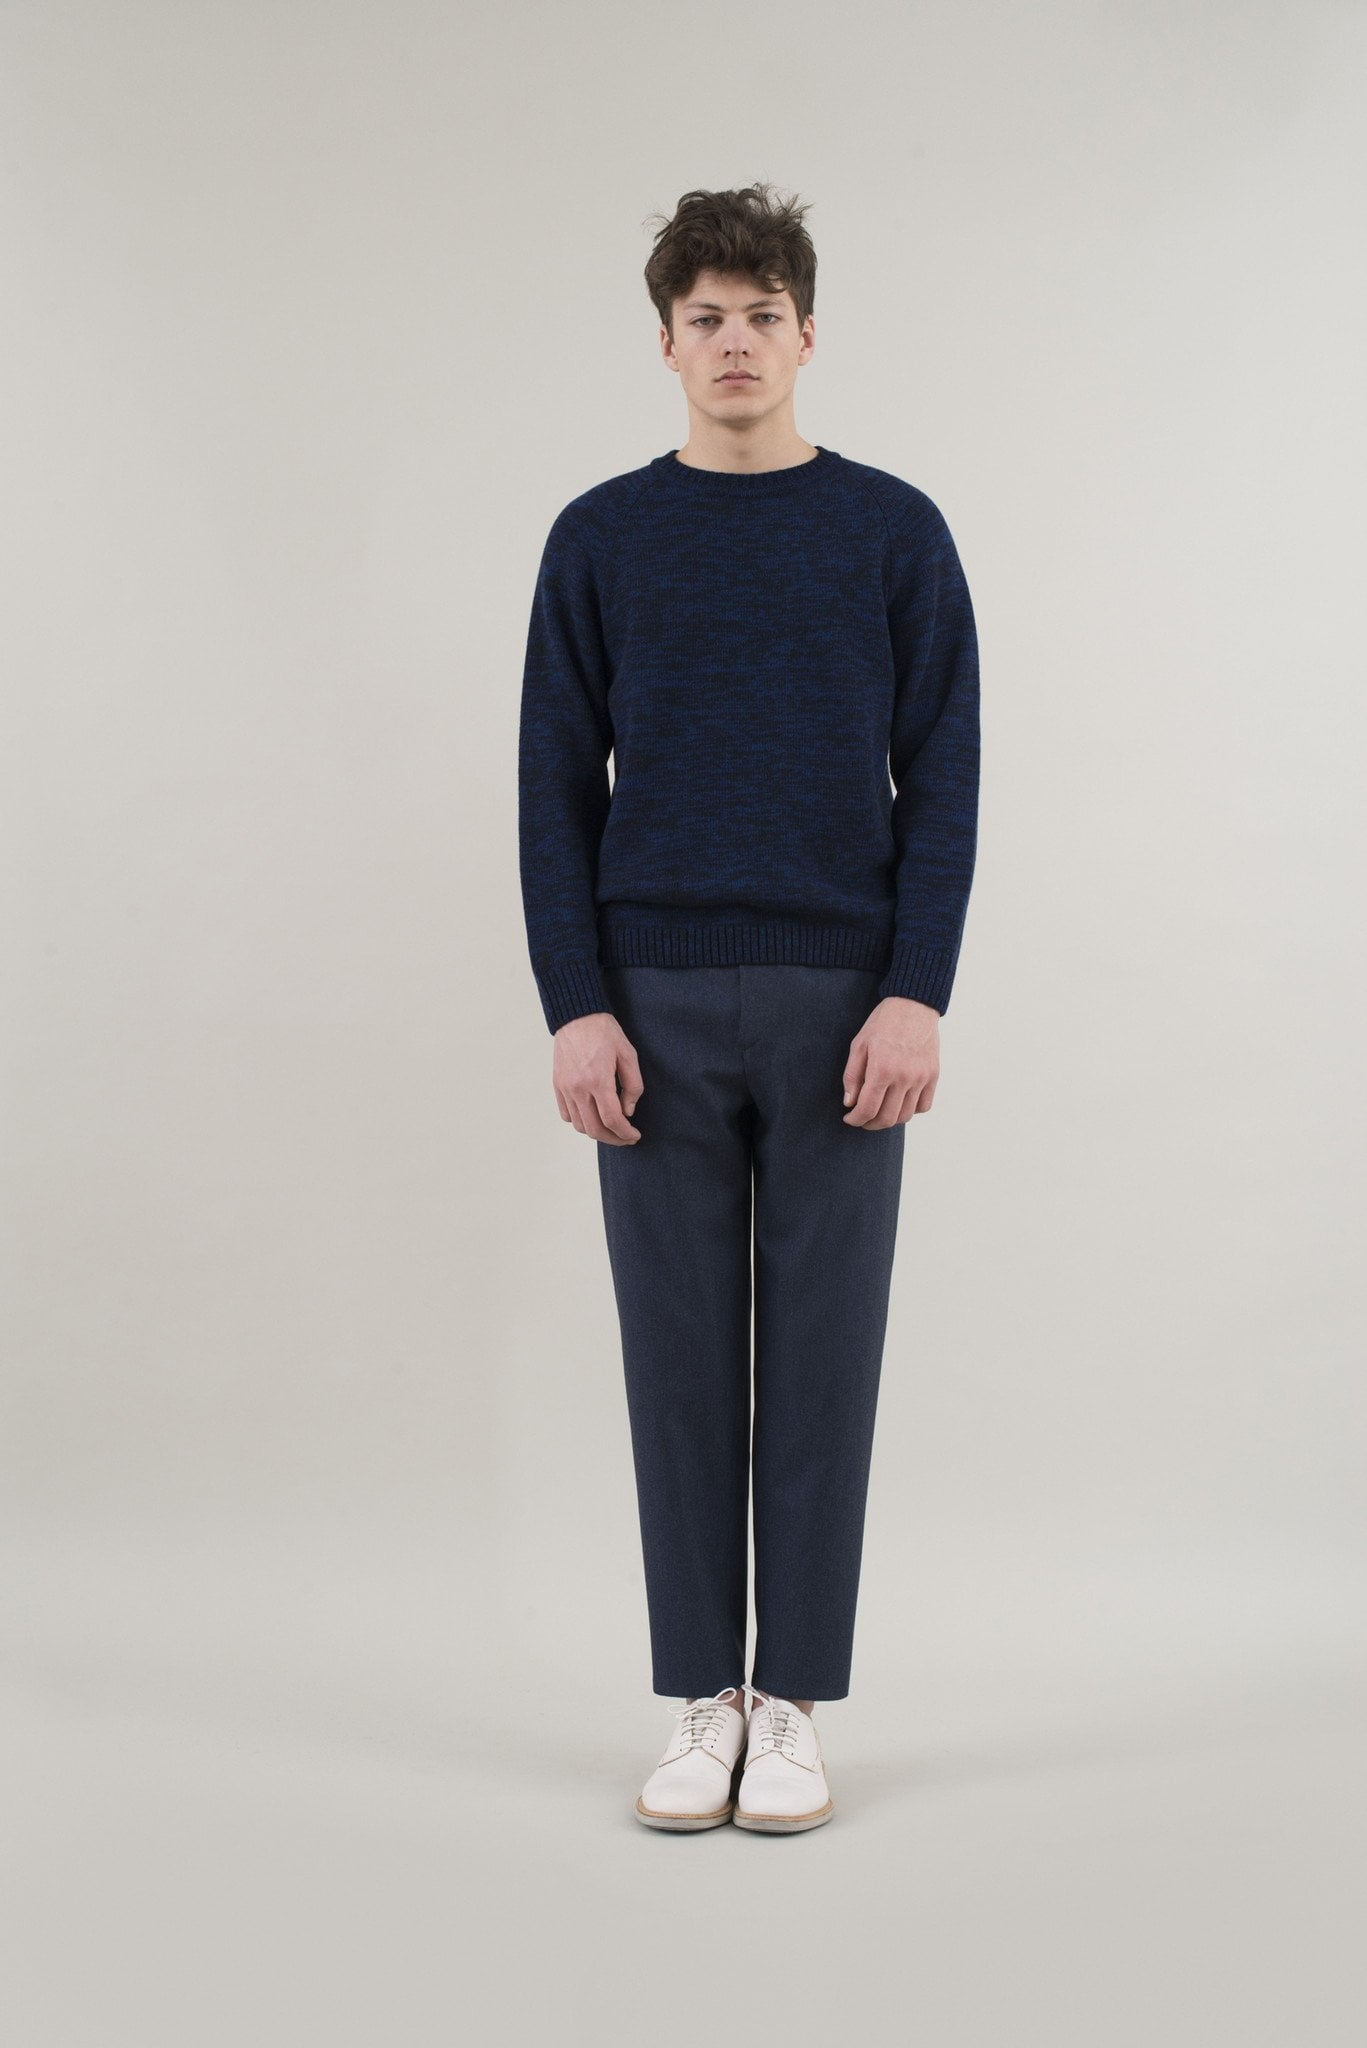 Sweater Kamitani - black/blue